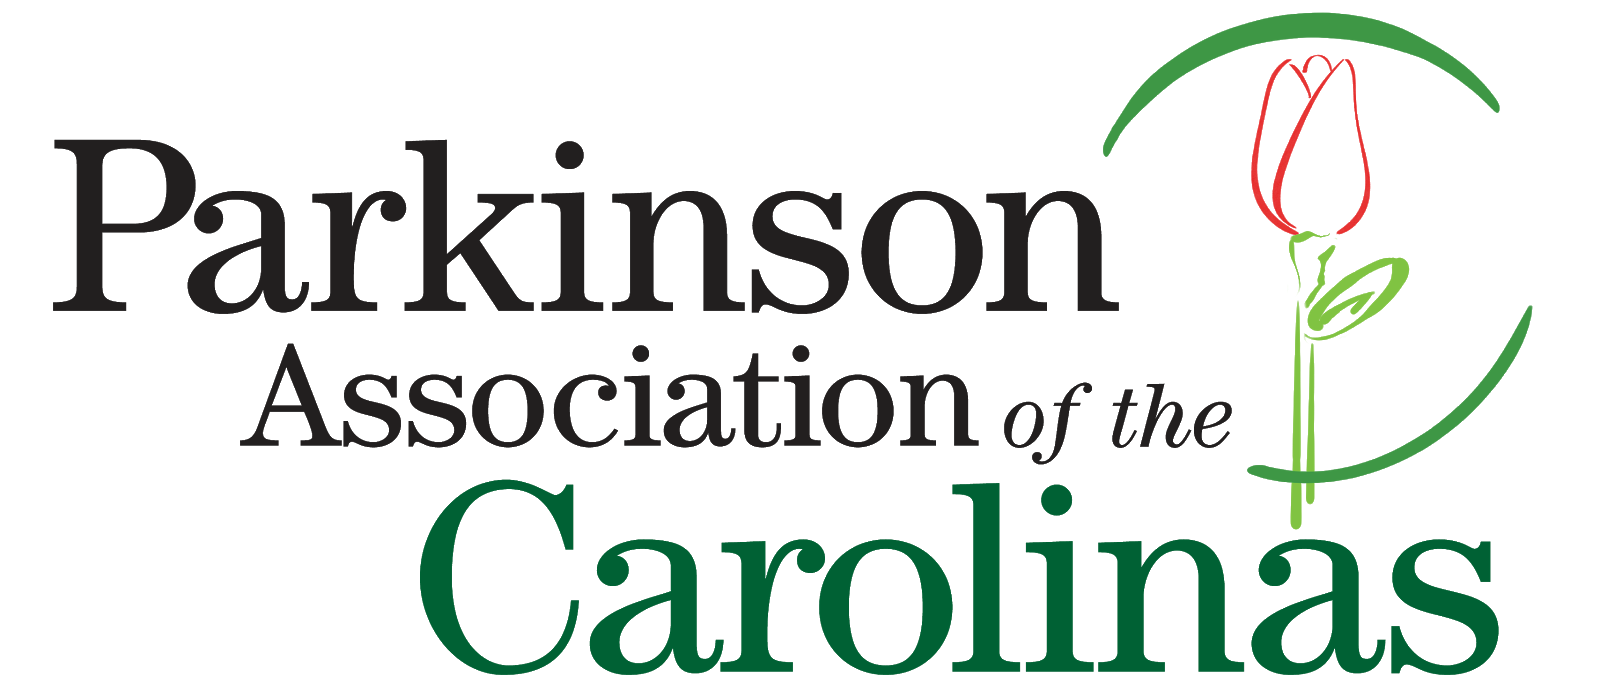 Parkinson Association of the Carolinas